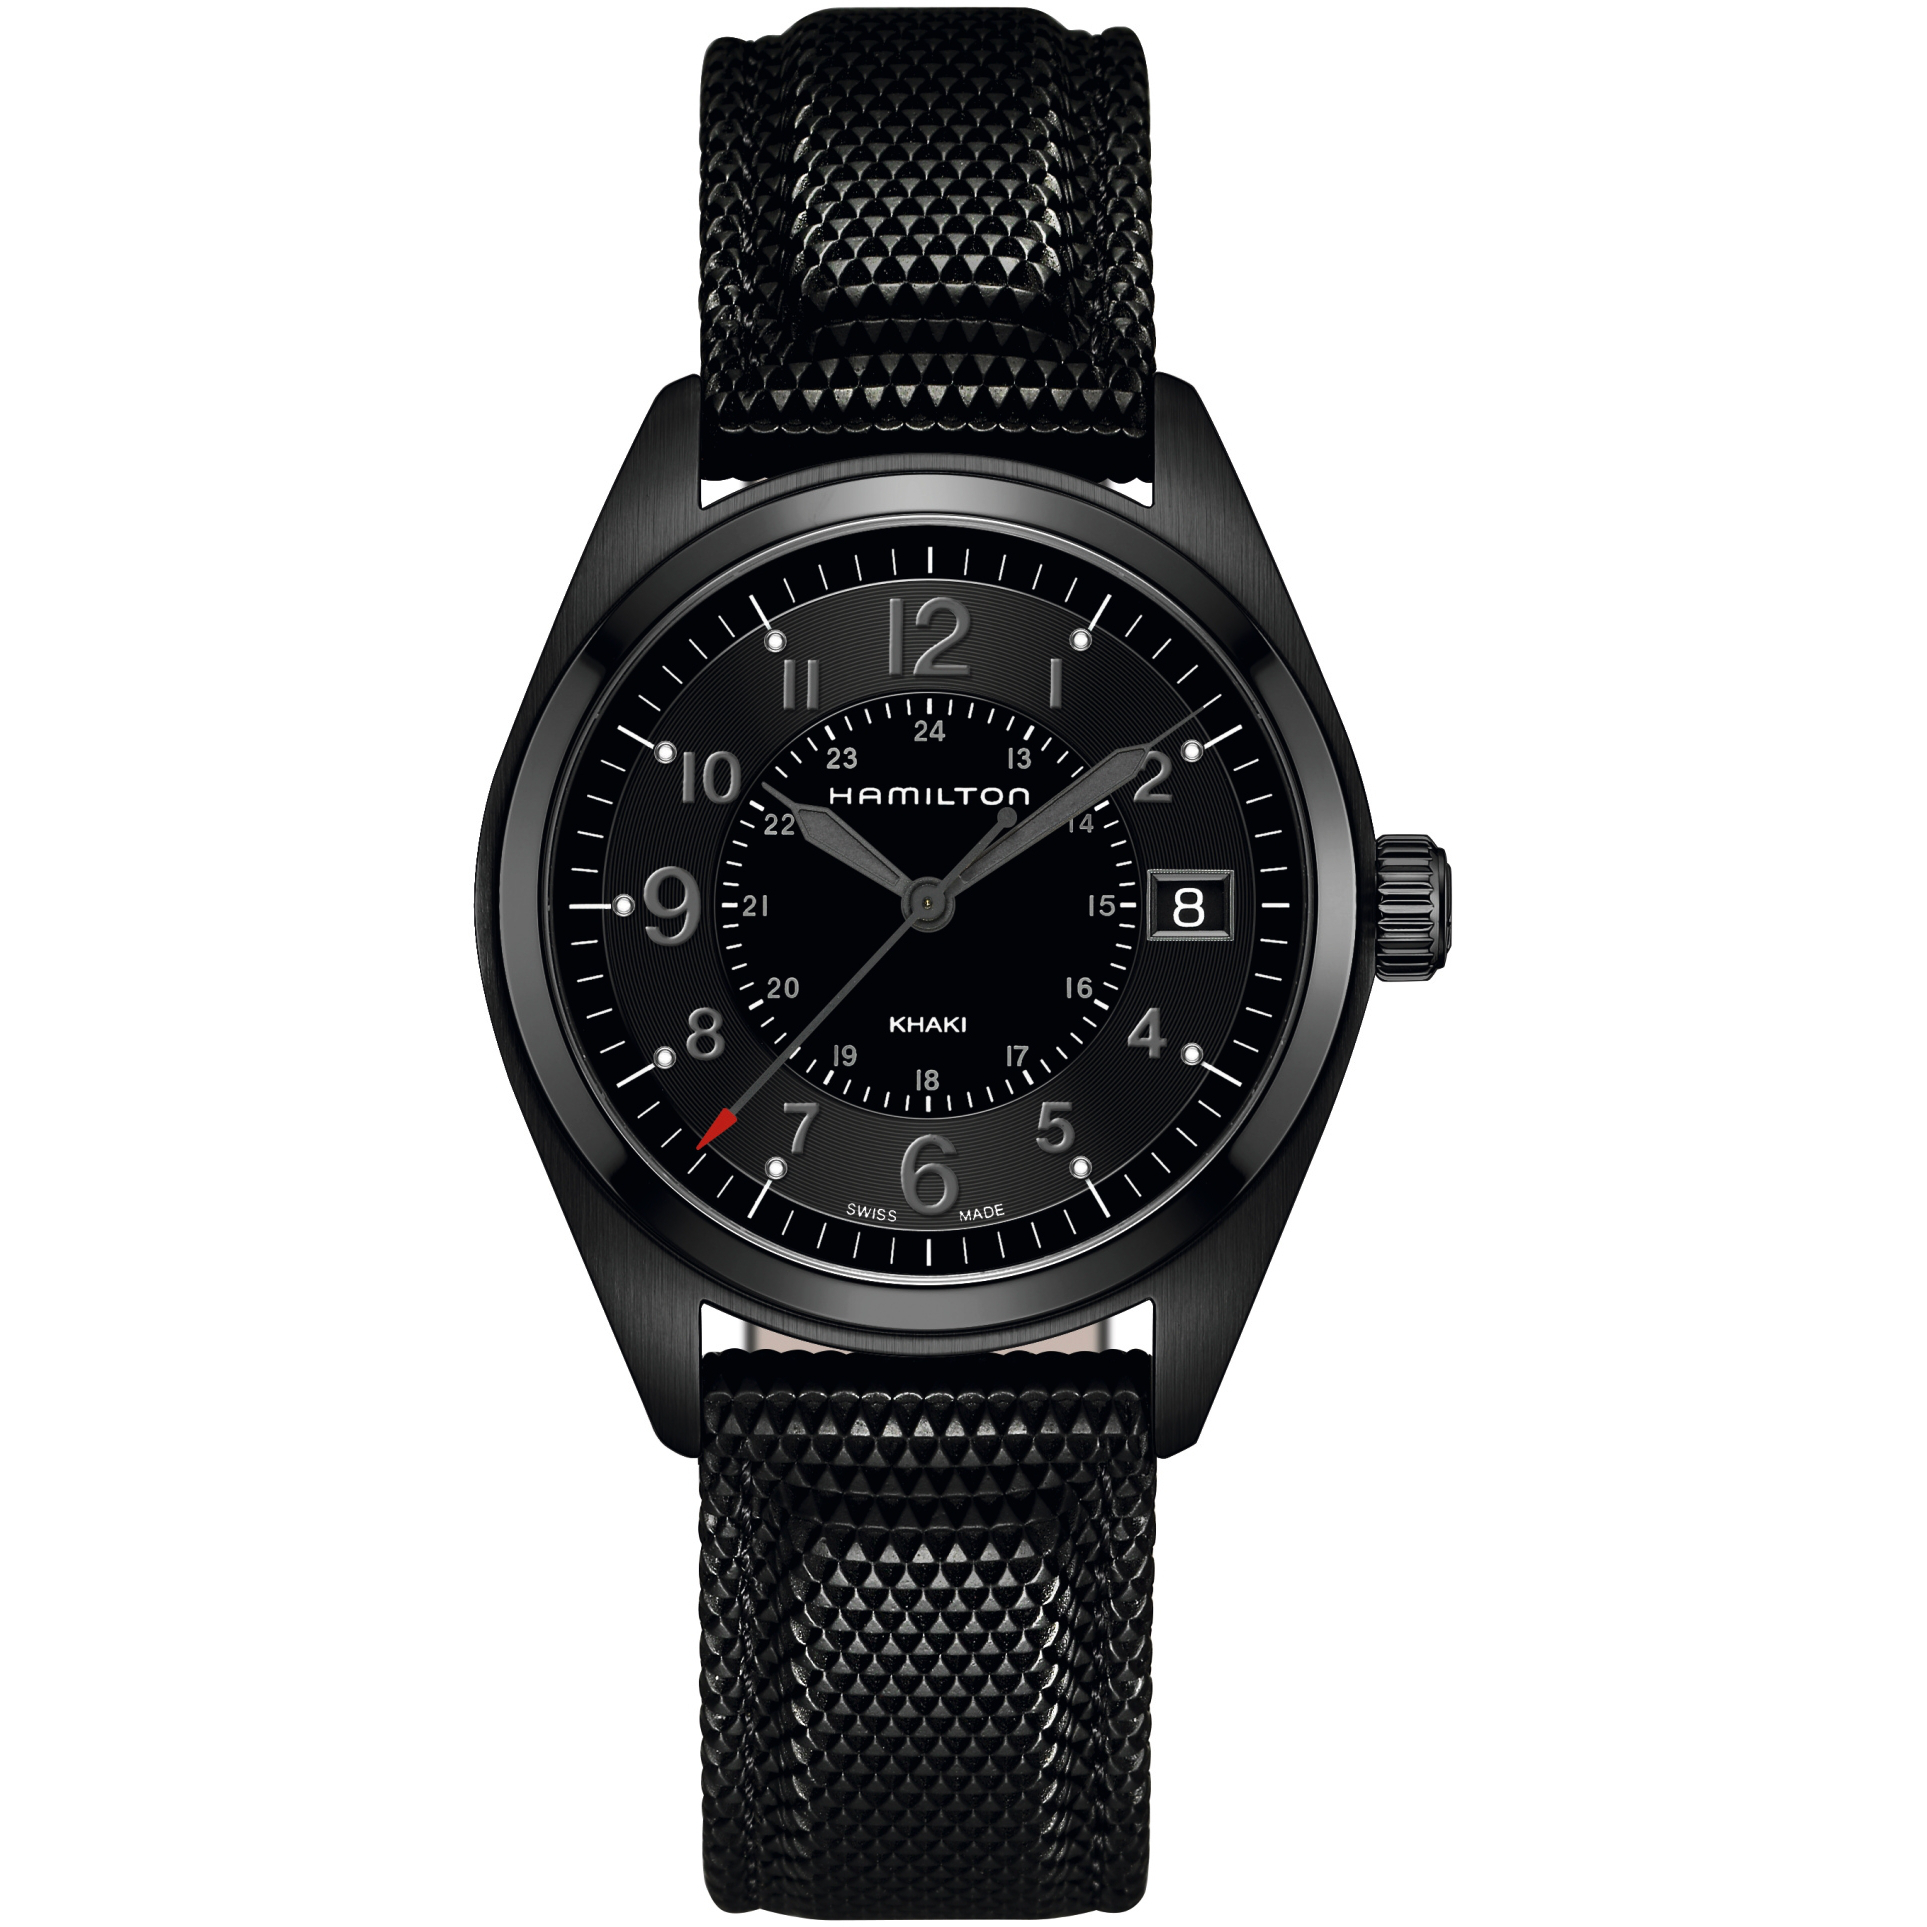 jm watch mason aviation pvd black aviator watches product jack bracelet mens